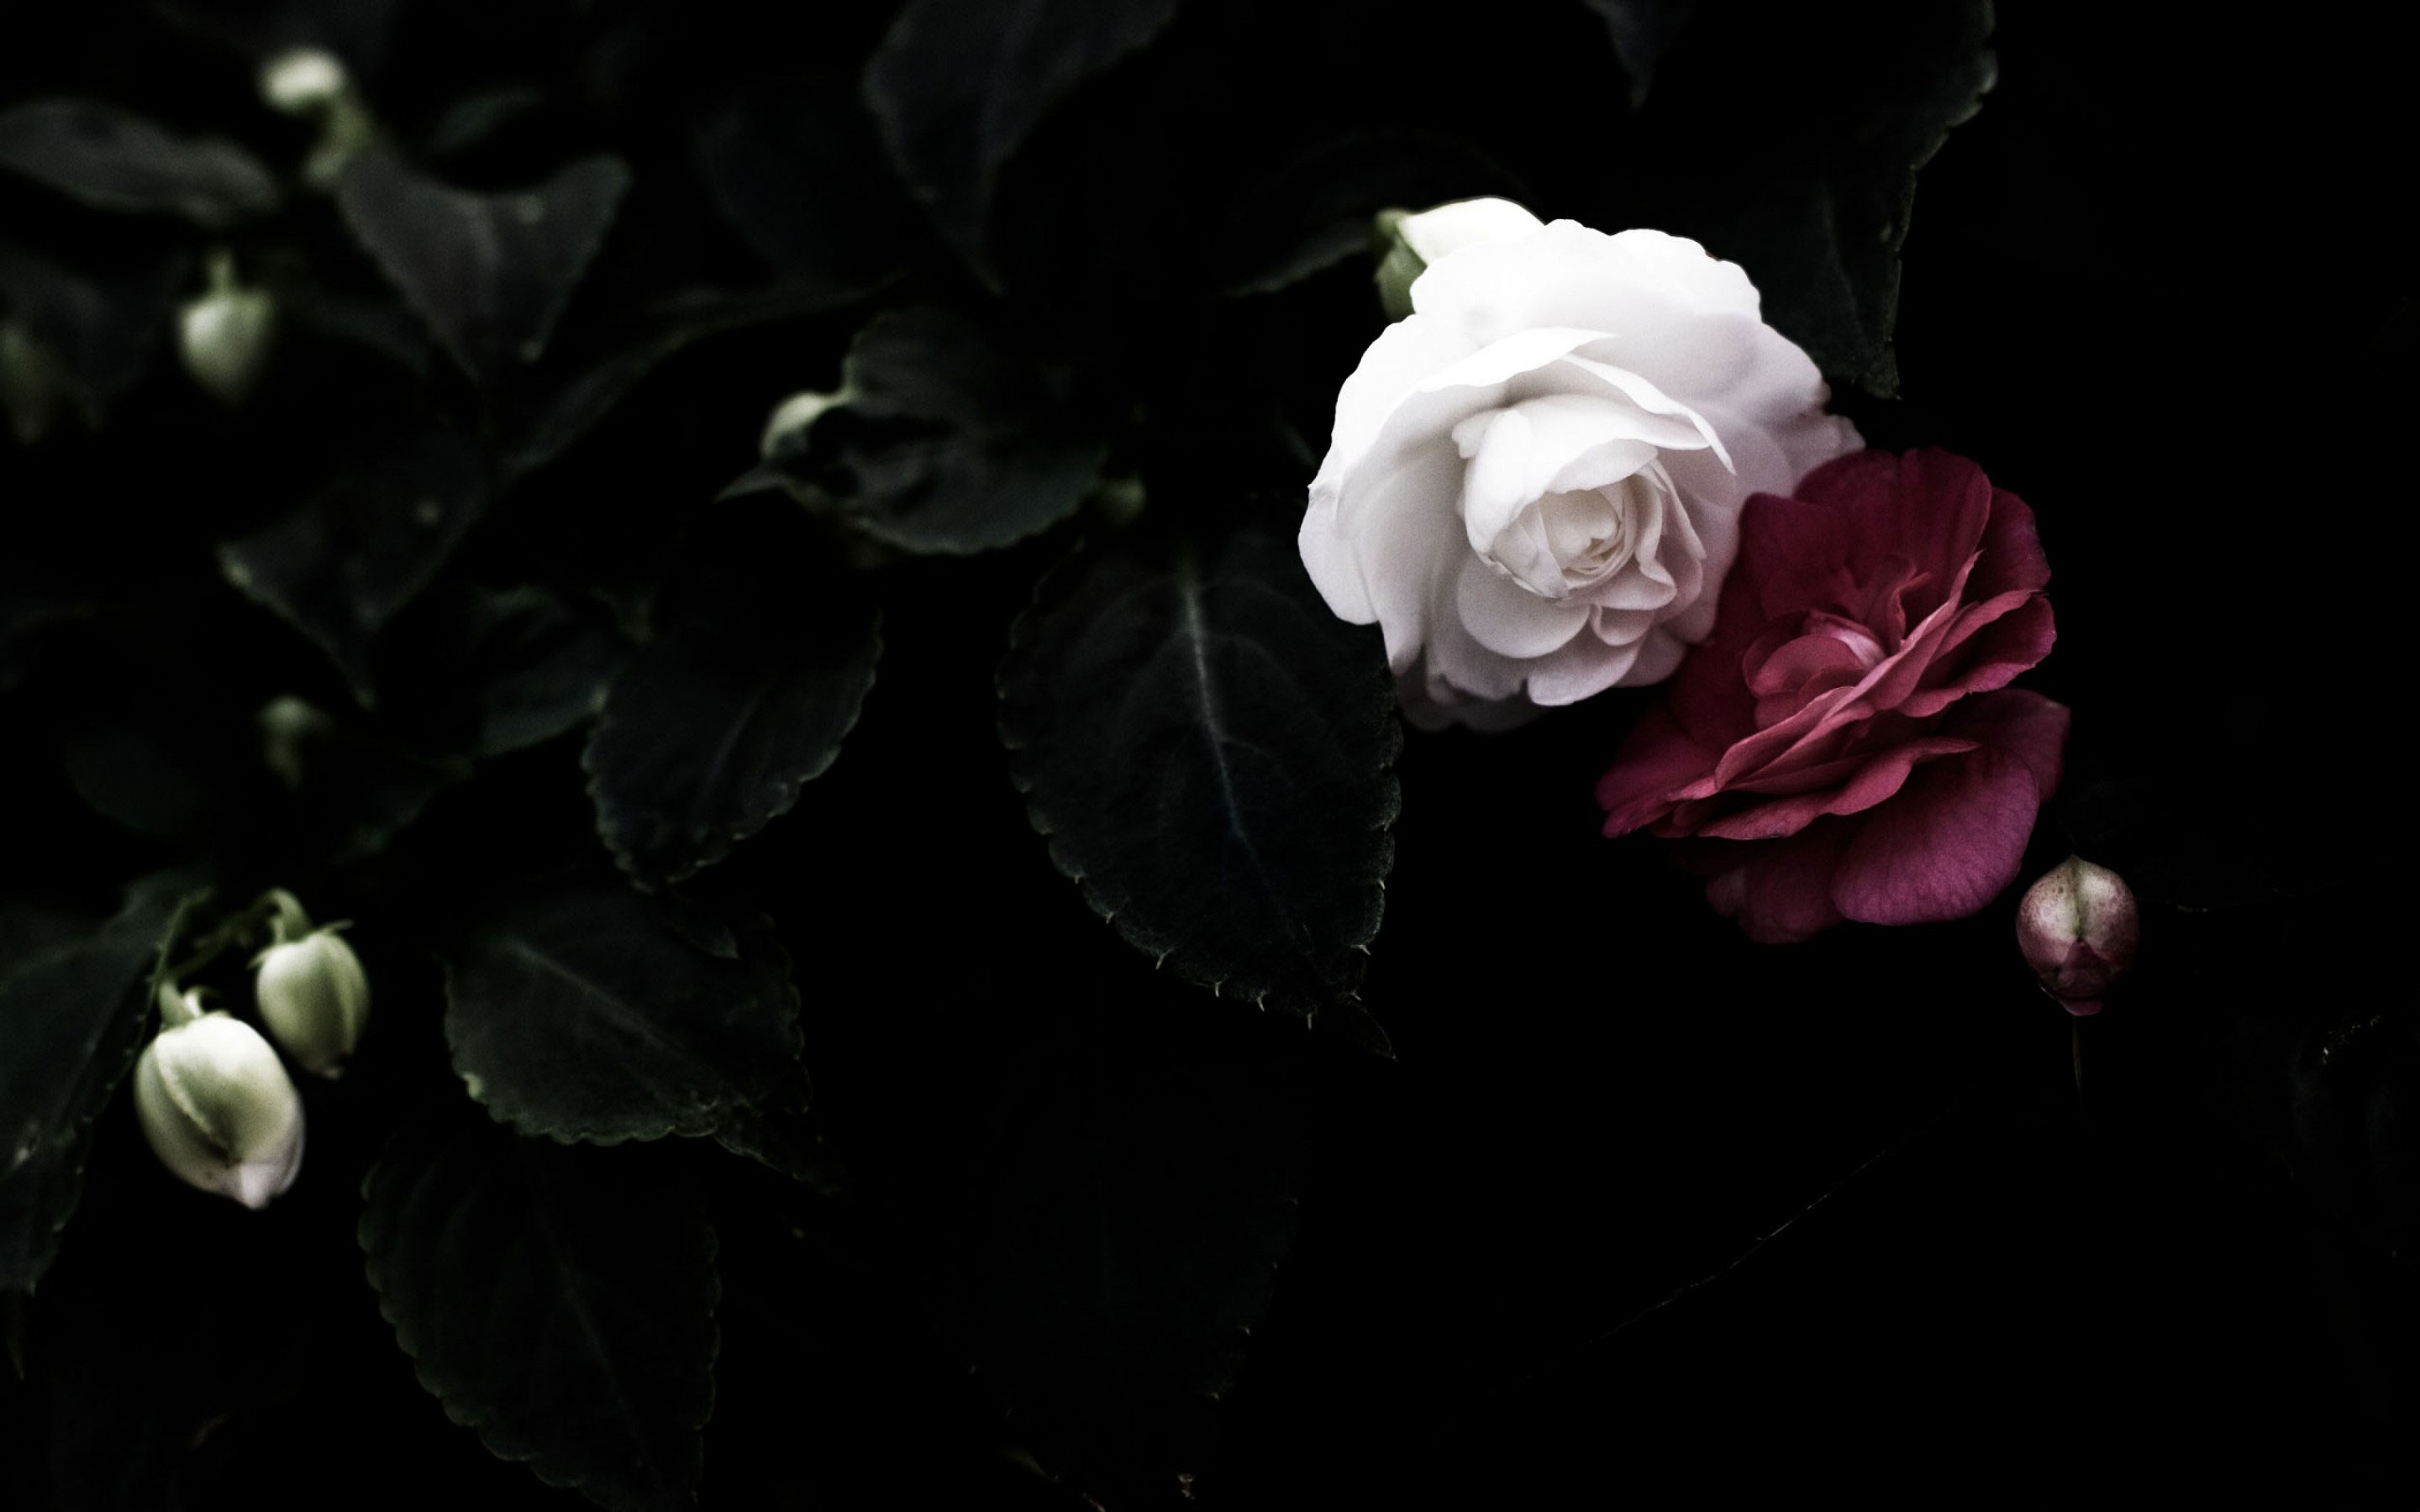 Black Rose Wallpapers High Quality | Download Free